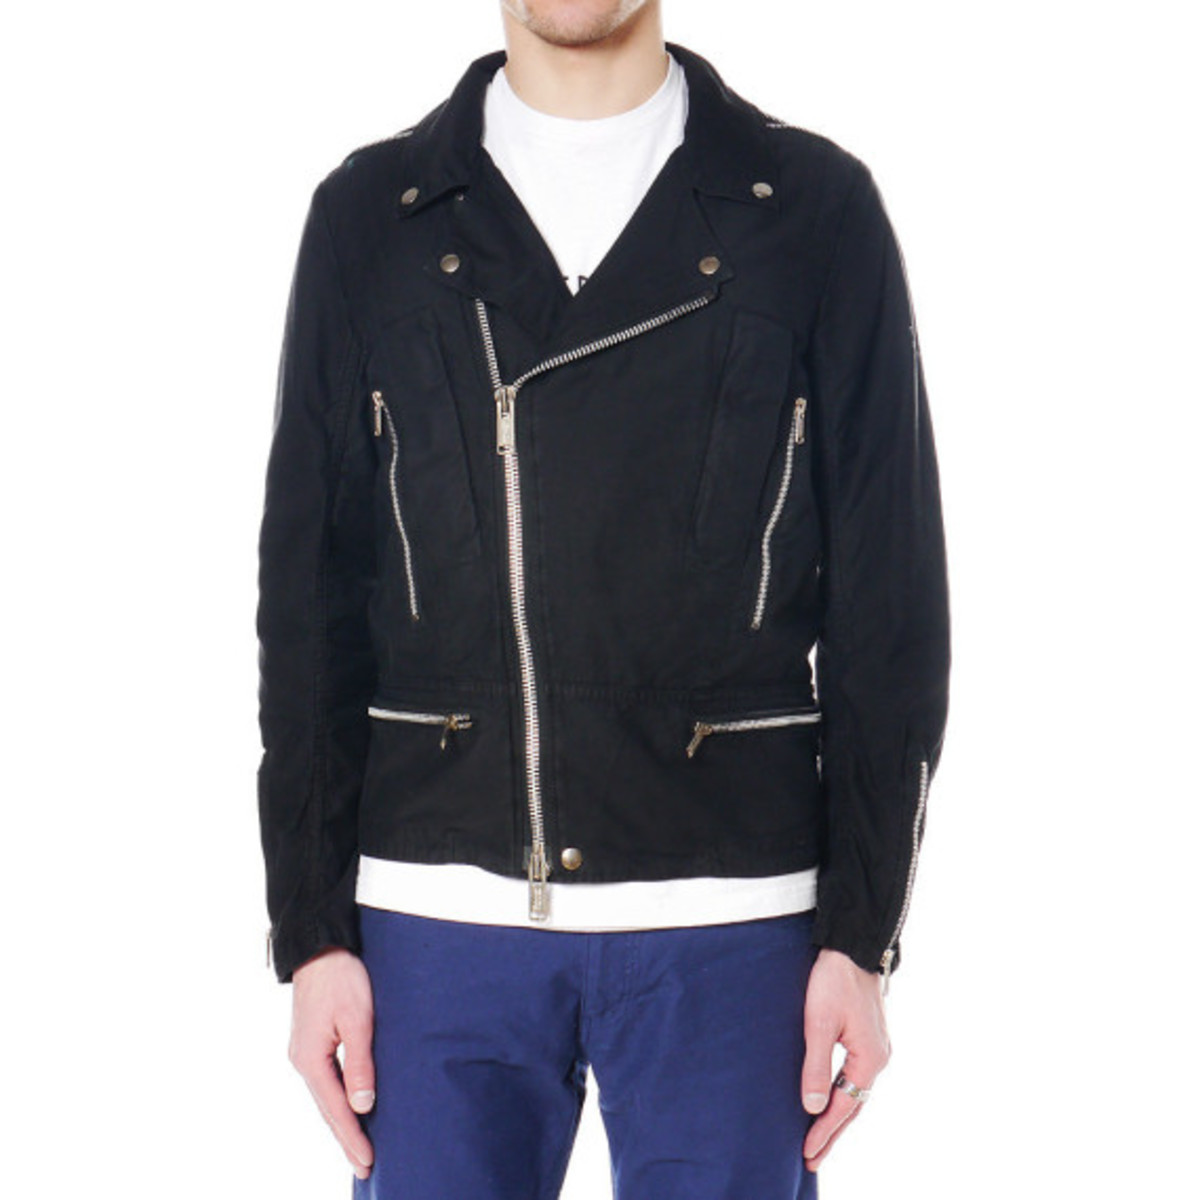 undercover-m4201-2-jacket-02